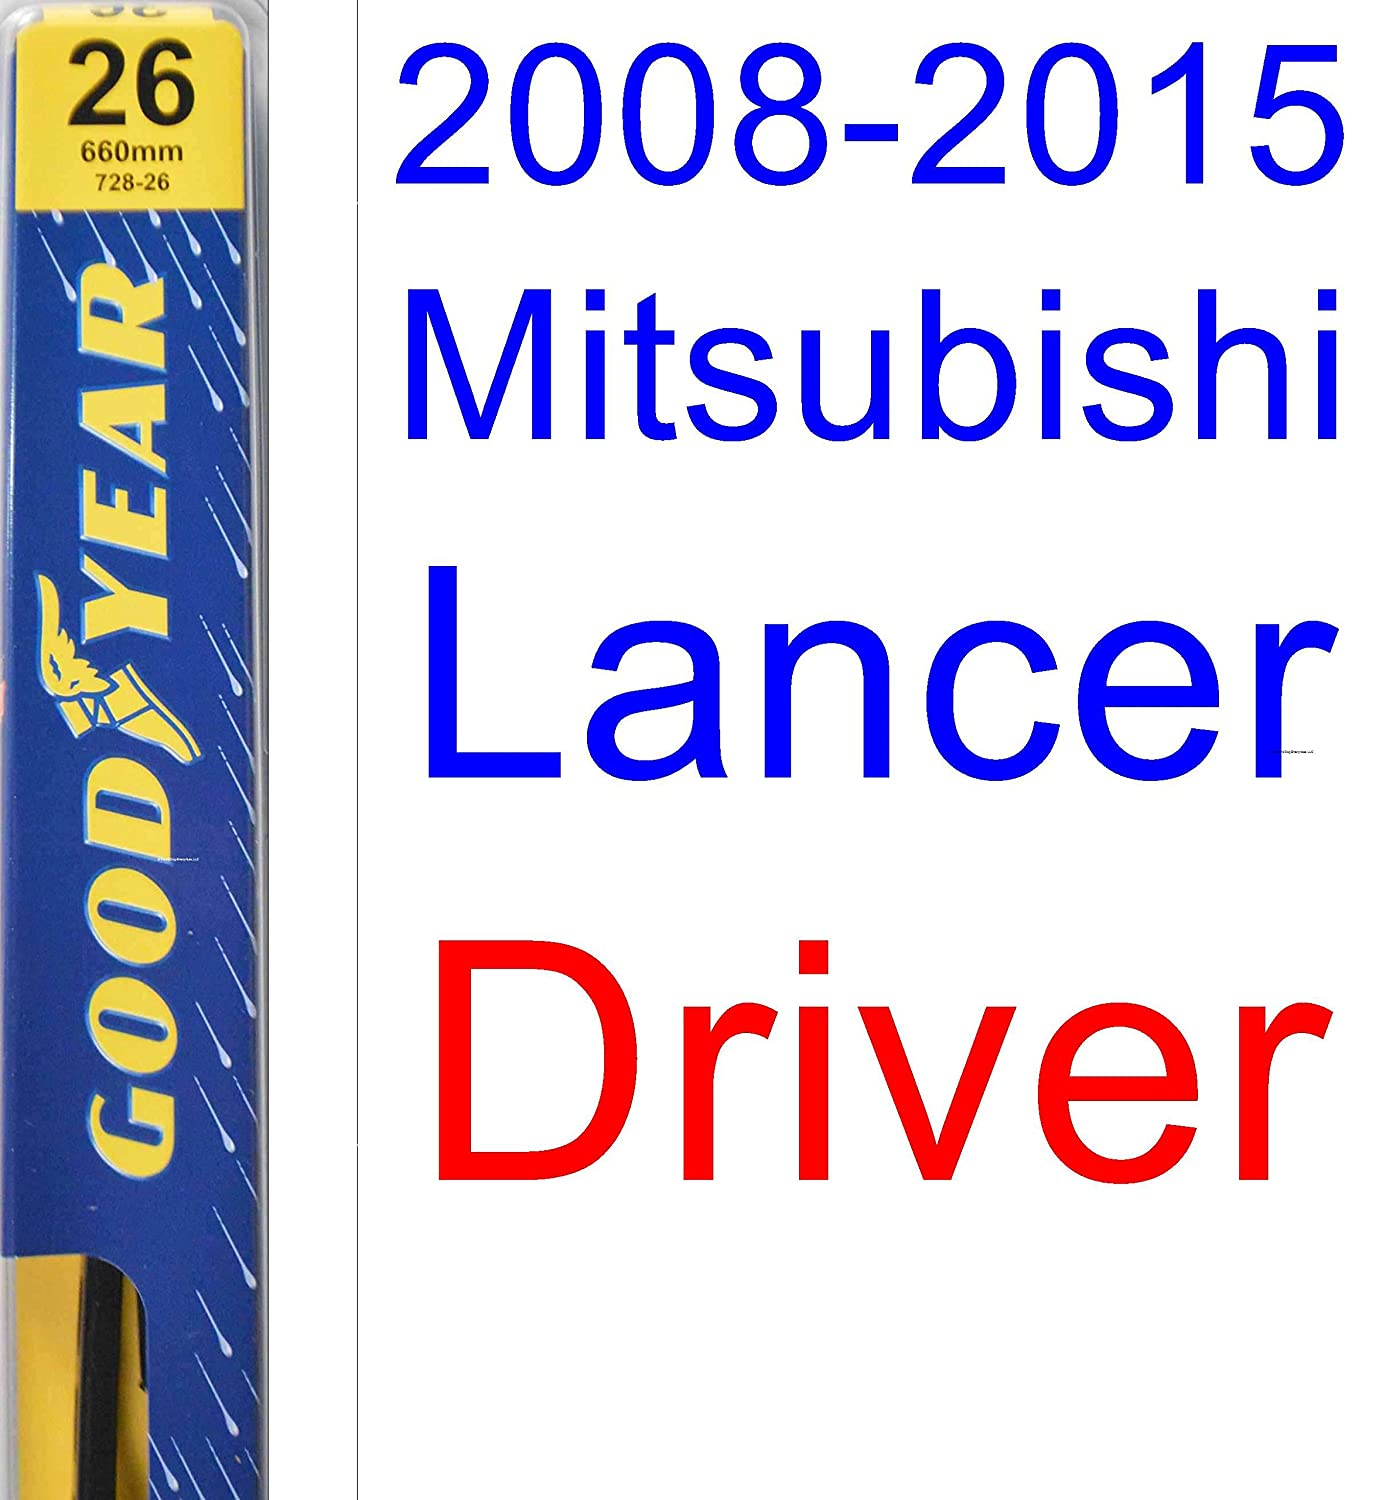 2008-2015 Mitsubishi Lancer Replacement Wiper Blade Set/Kit (Set of 2 Blades) (Goodyear Wiper Blades-Premium) (2009,2010,2011,2012,2013,2014)